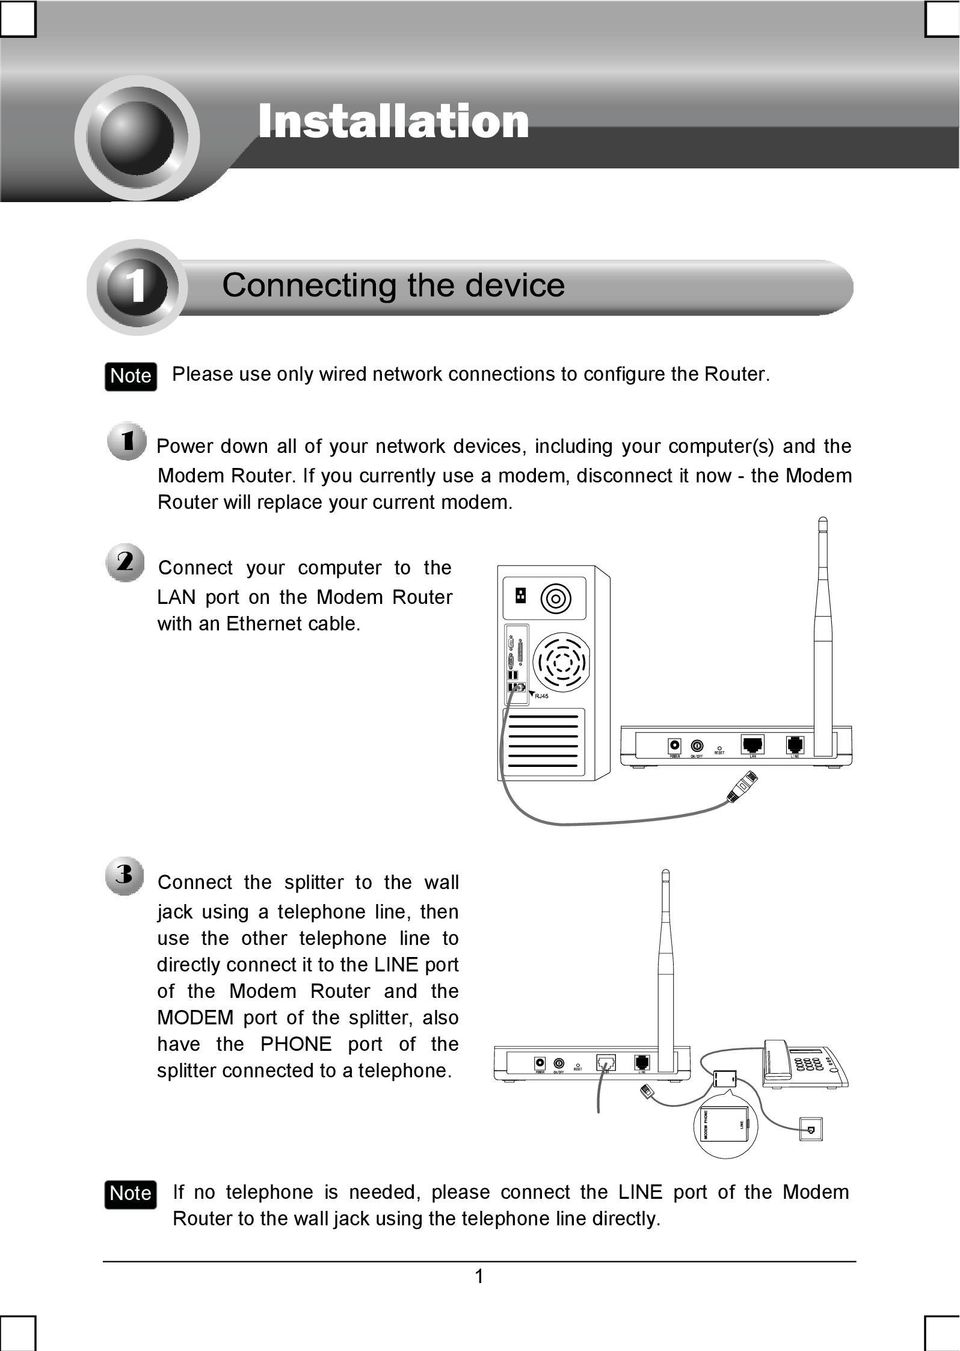 Replace Phone Line With Ethernet : replace, phone, ethernet, Telephone, Needed,, Please, Connect, Modem, Router, Using, Directly., Download